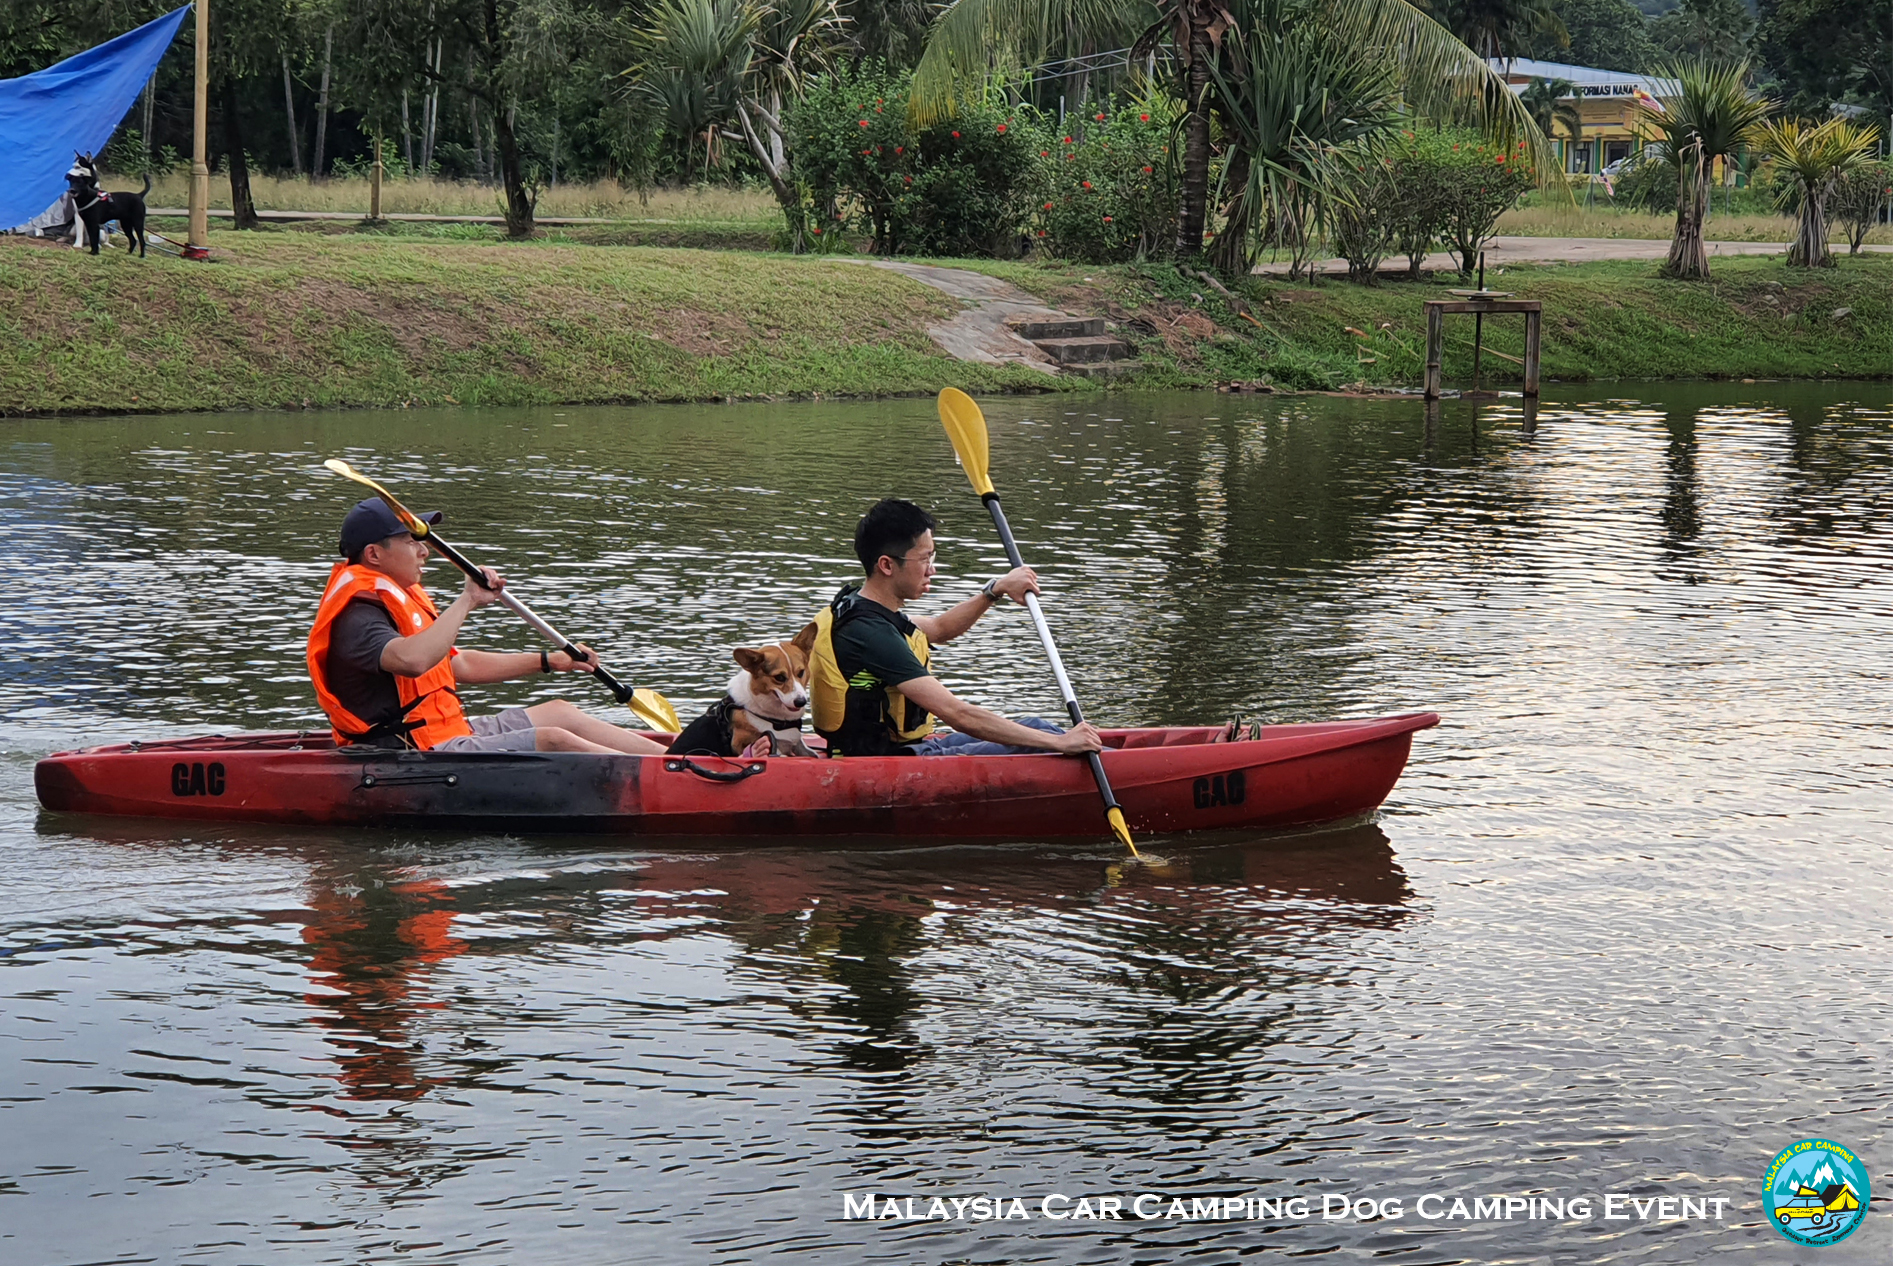 kayaking_dog_dog_camping_event_selangor_camping_site_malaysia_car_camping_private_event_organizer-7